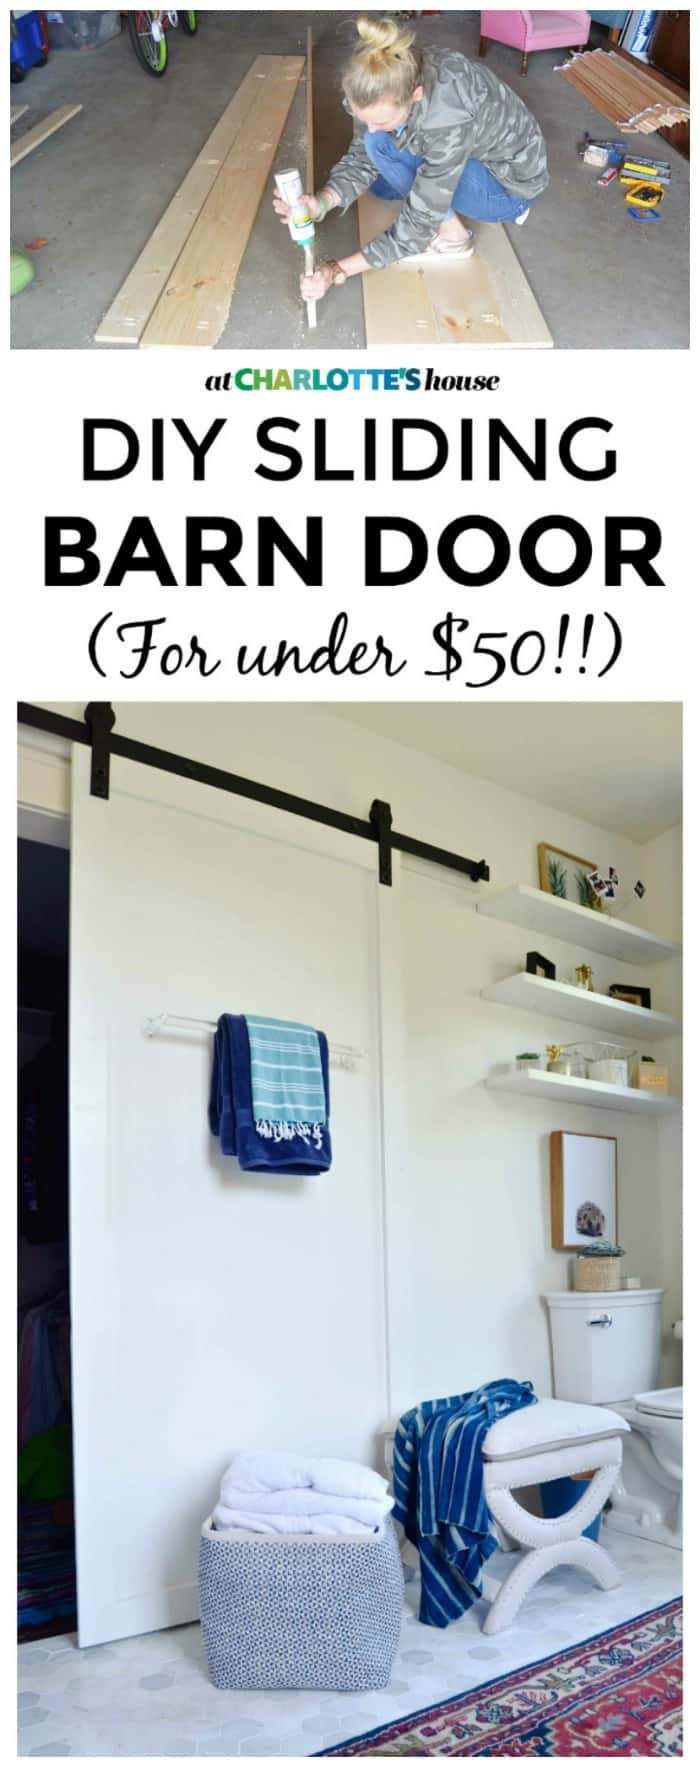 Simple tutorial for how to build a custom sliding barn door for UNDER $50.